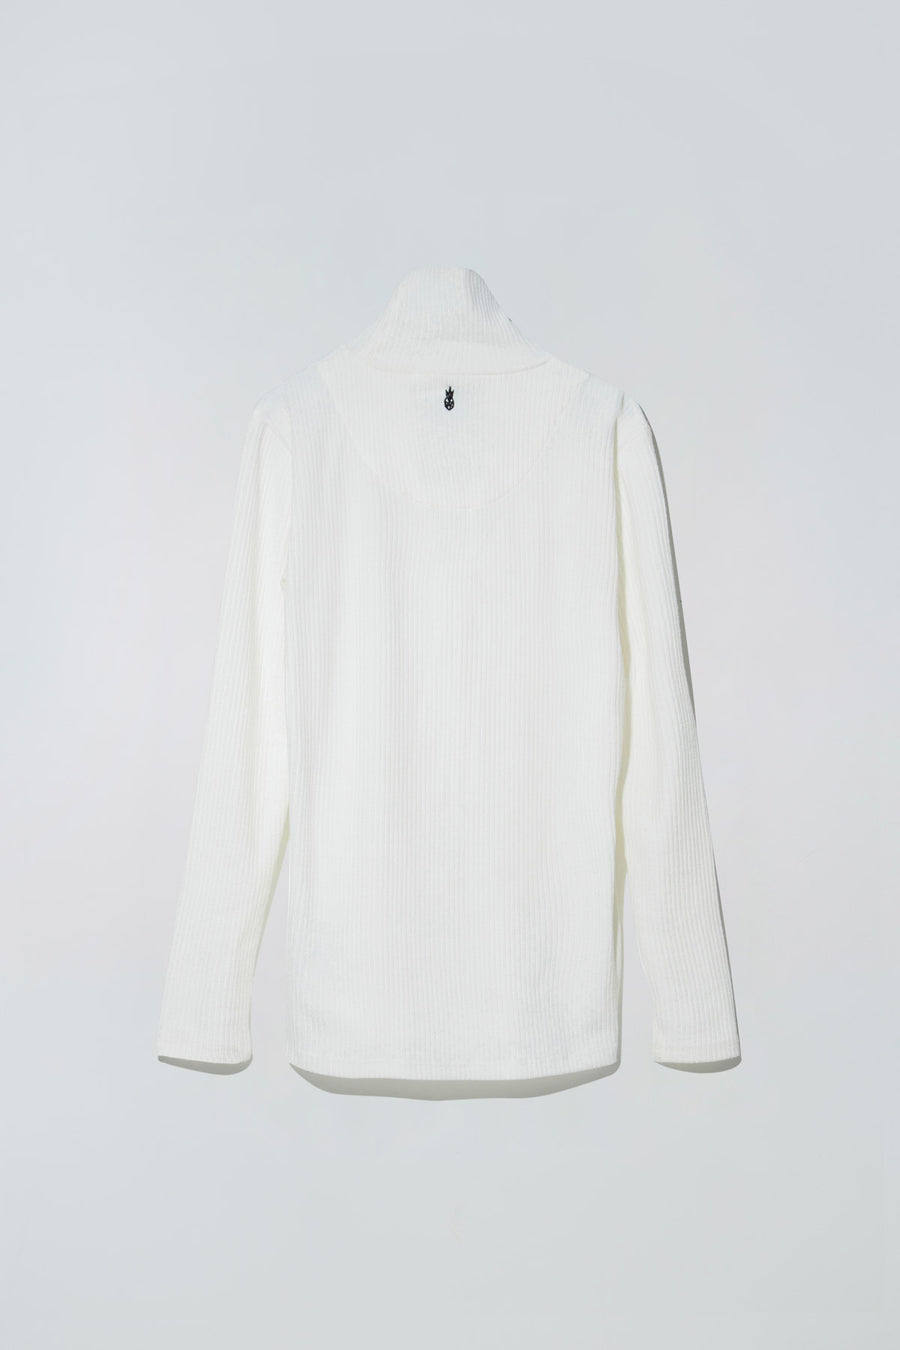 TBD Turtle Neck White